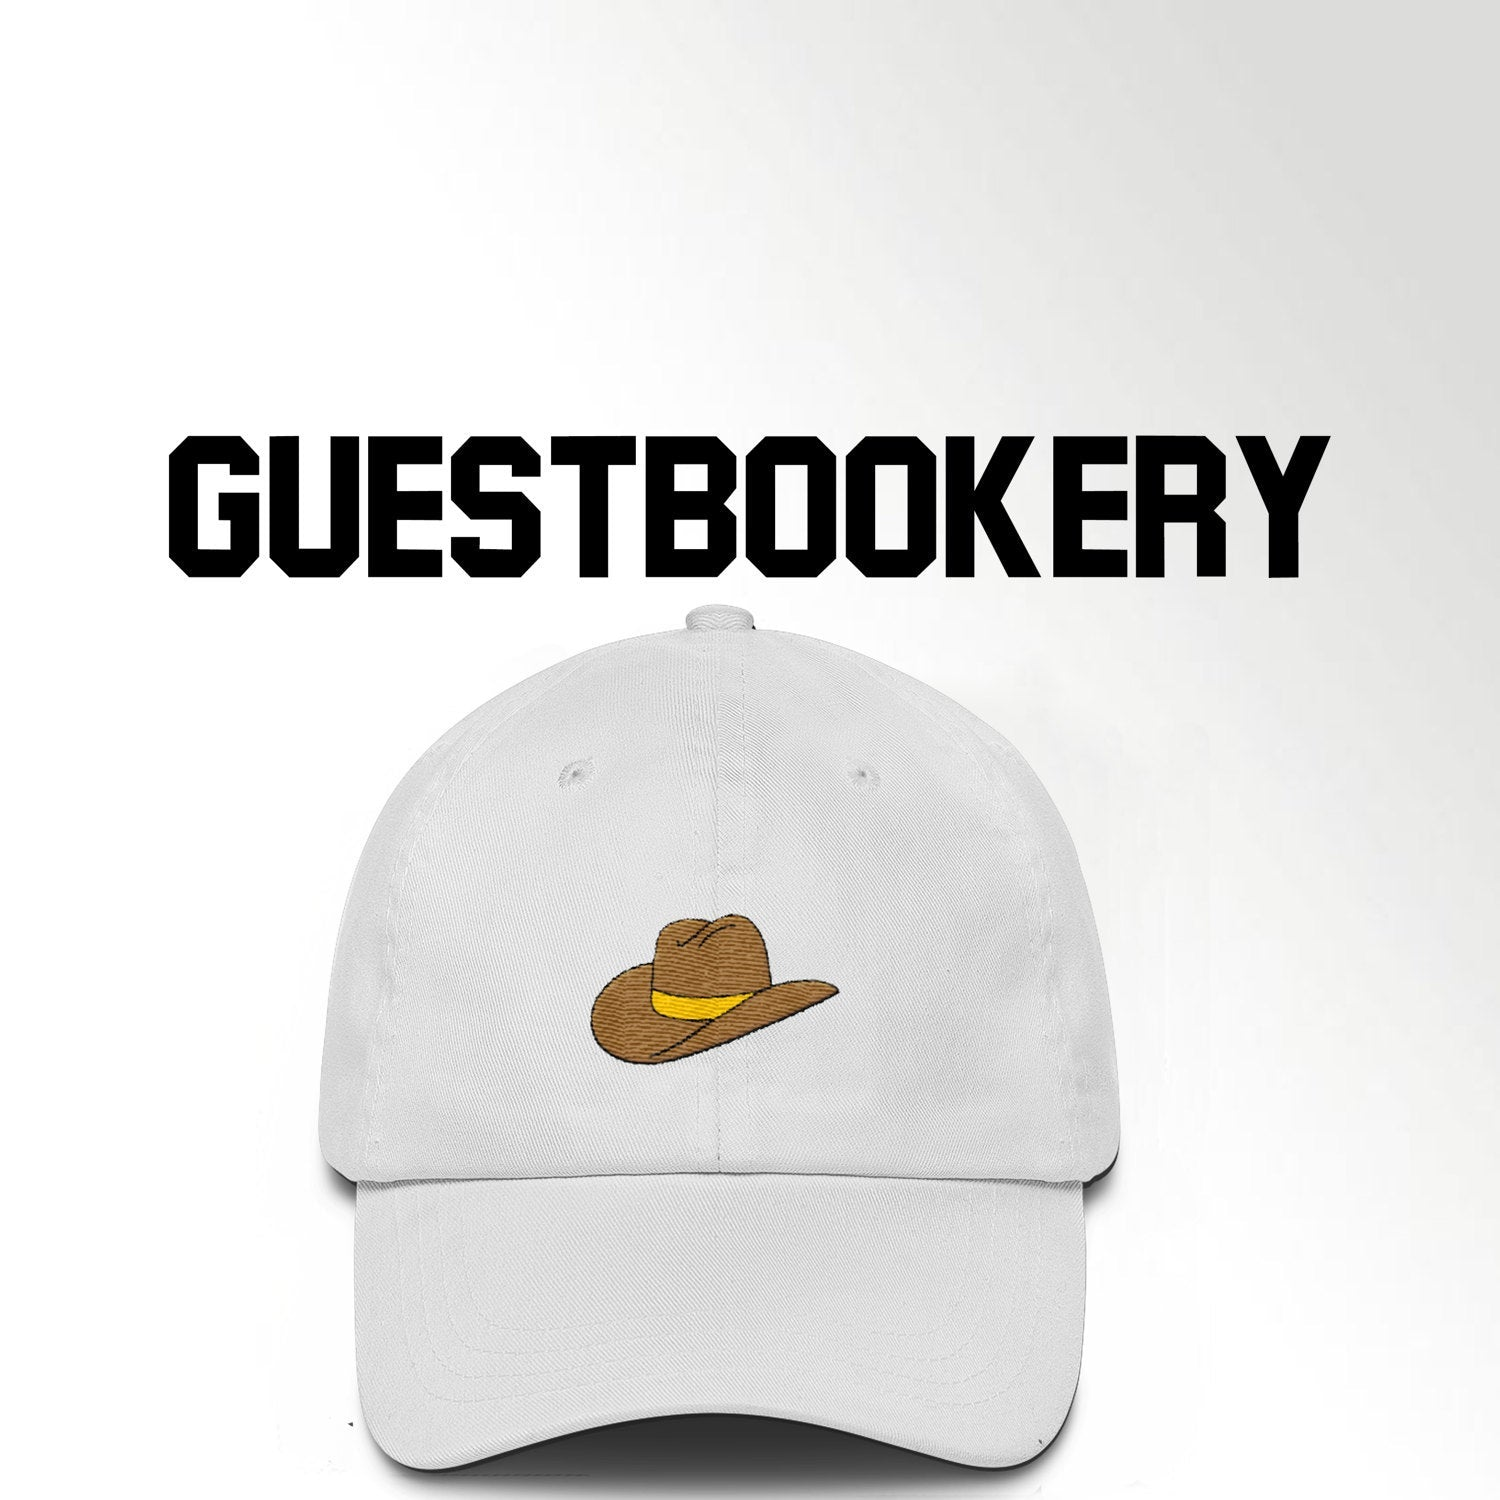 Cowboy Dad Hat - Guestbookery